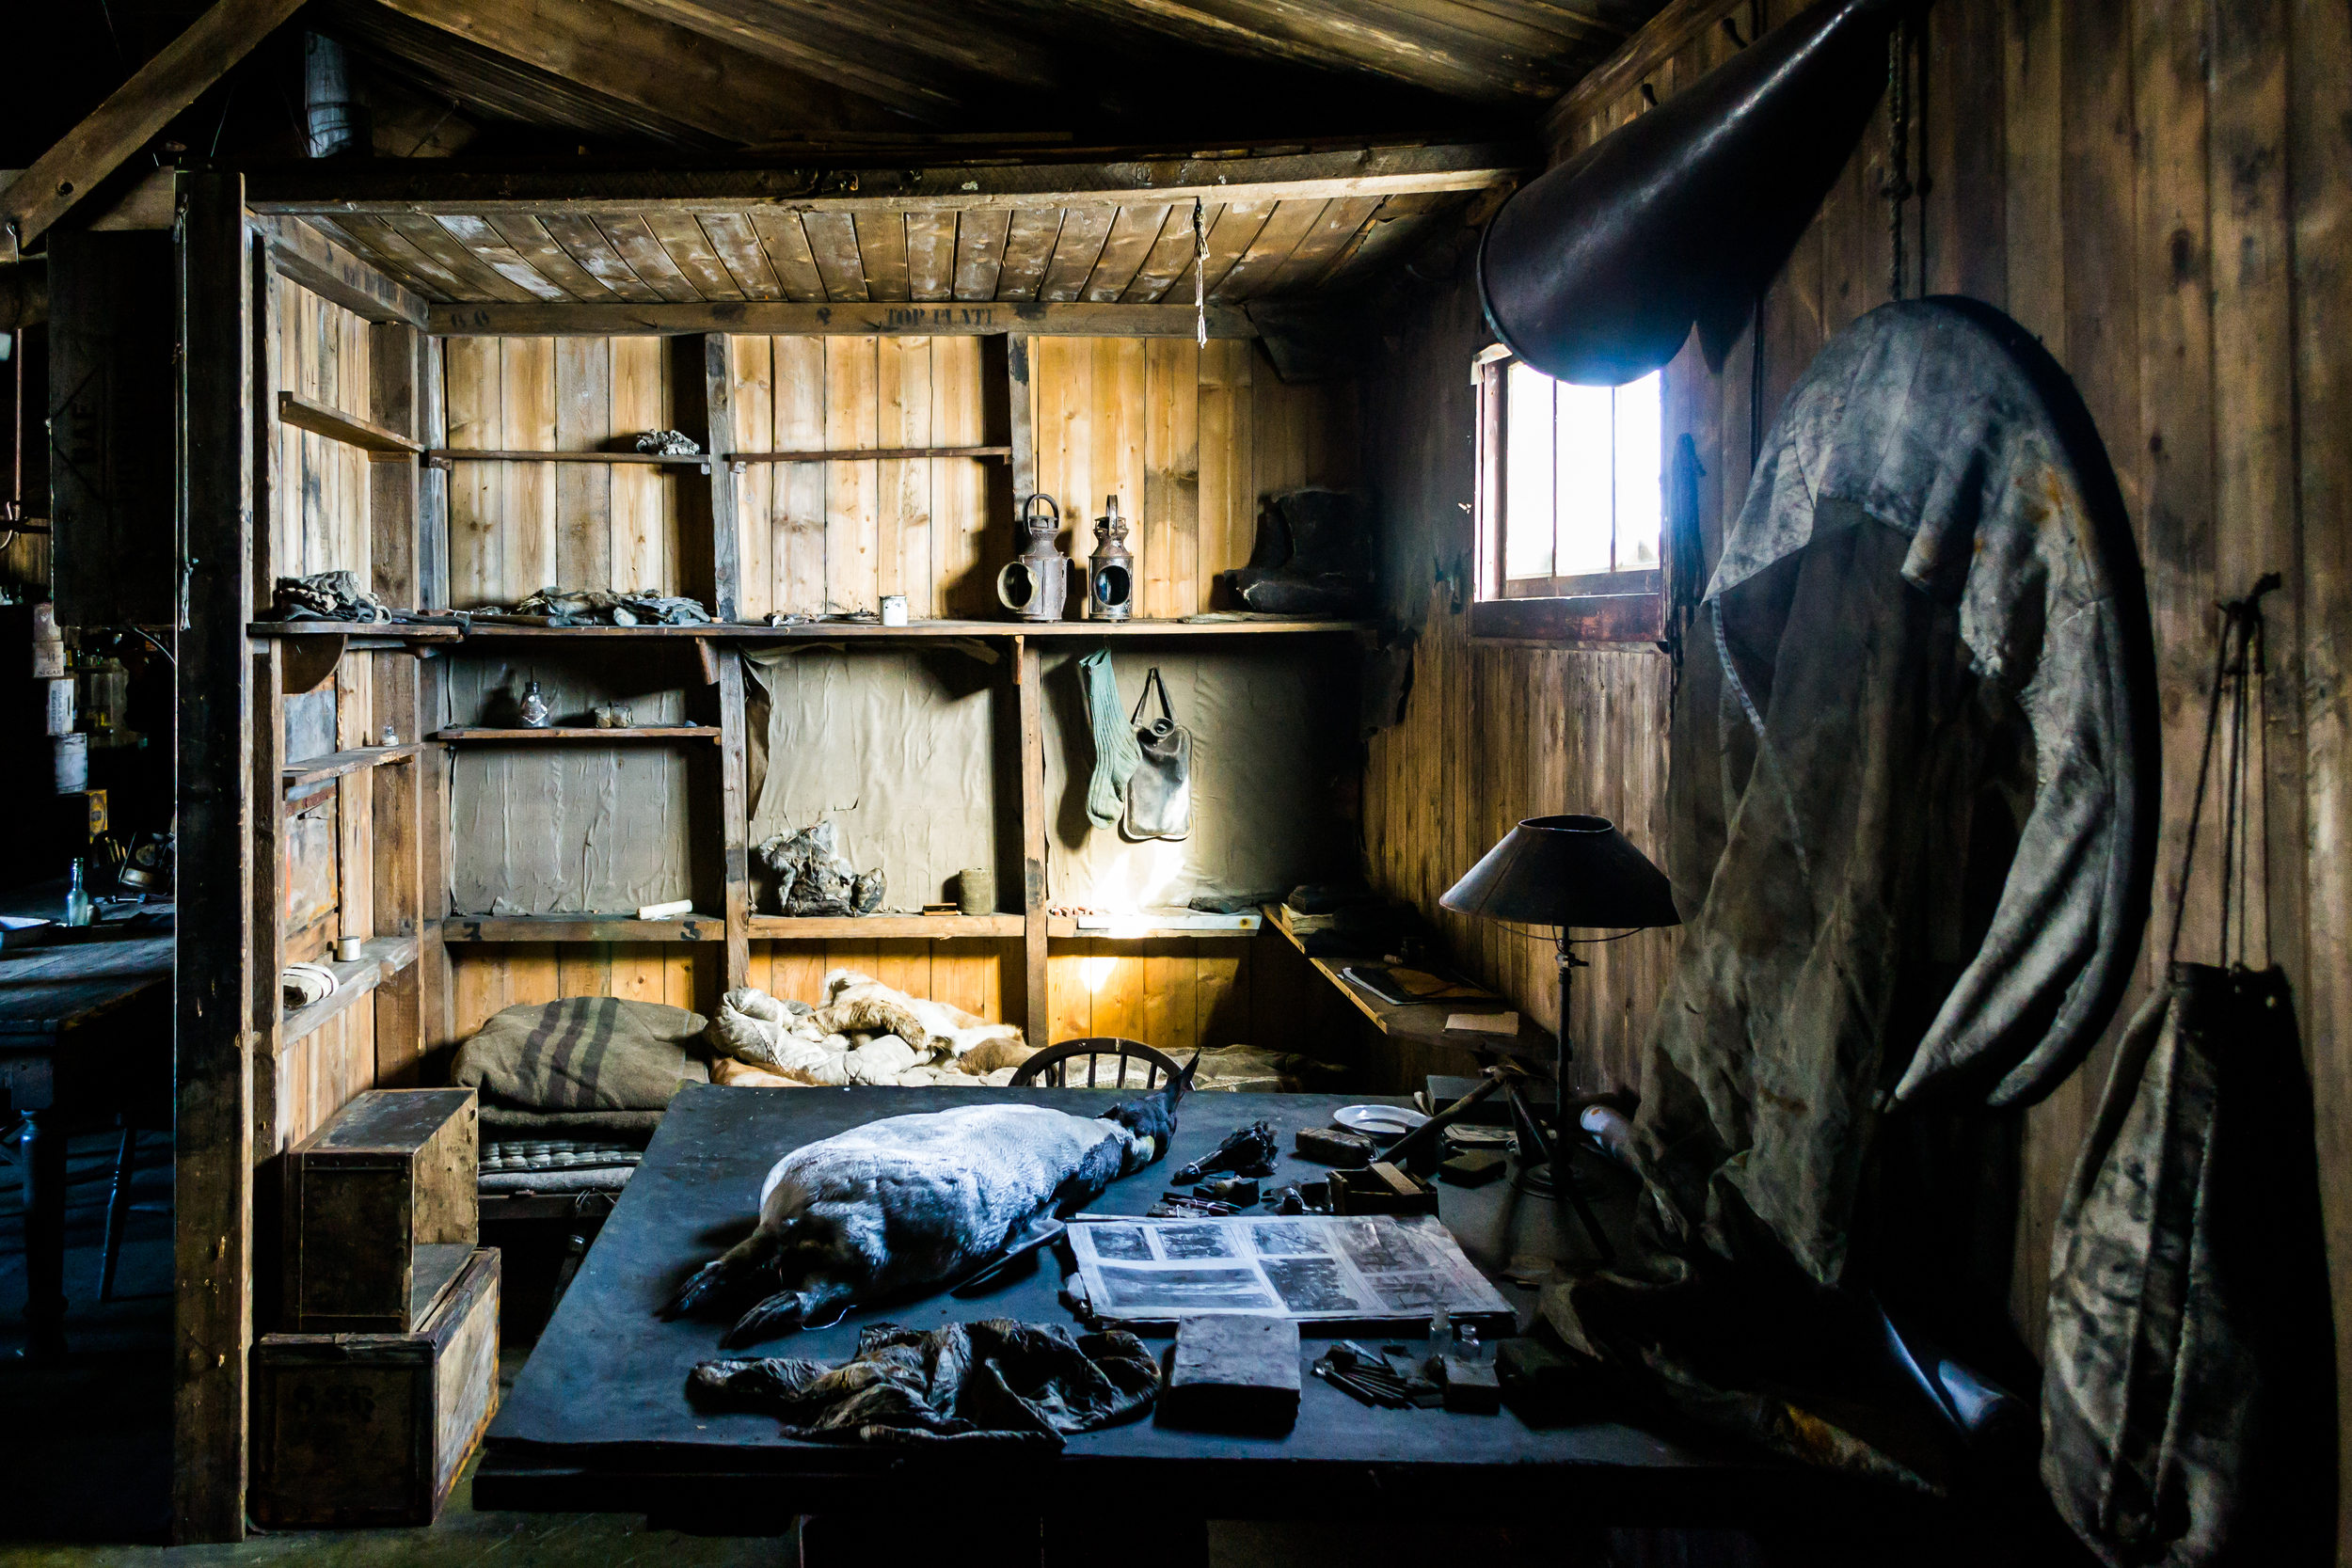 Modern photograph of the interior of Scott's hut, unchanged since 1913. Cape Evans, Ross Island, Antarctica. Photo: Flickr